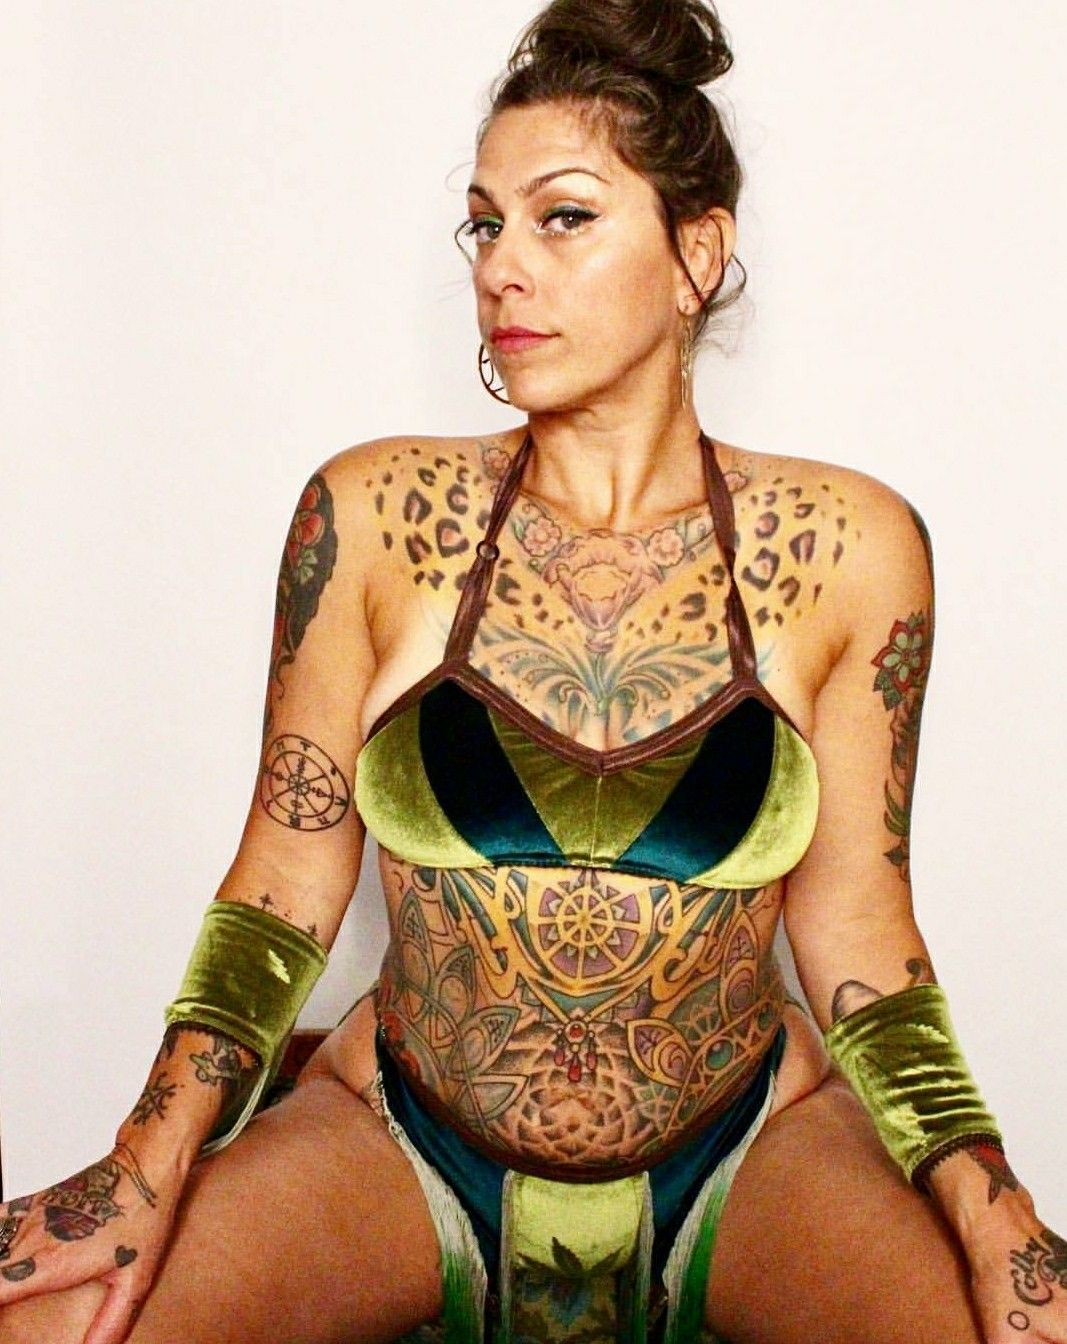 American Pickers Danielle Colby Nude danielle colby | danielle colby, latest images, american pickers